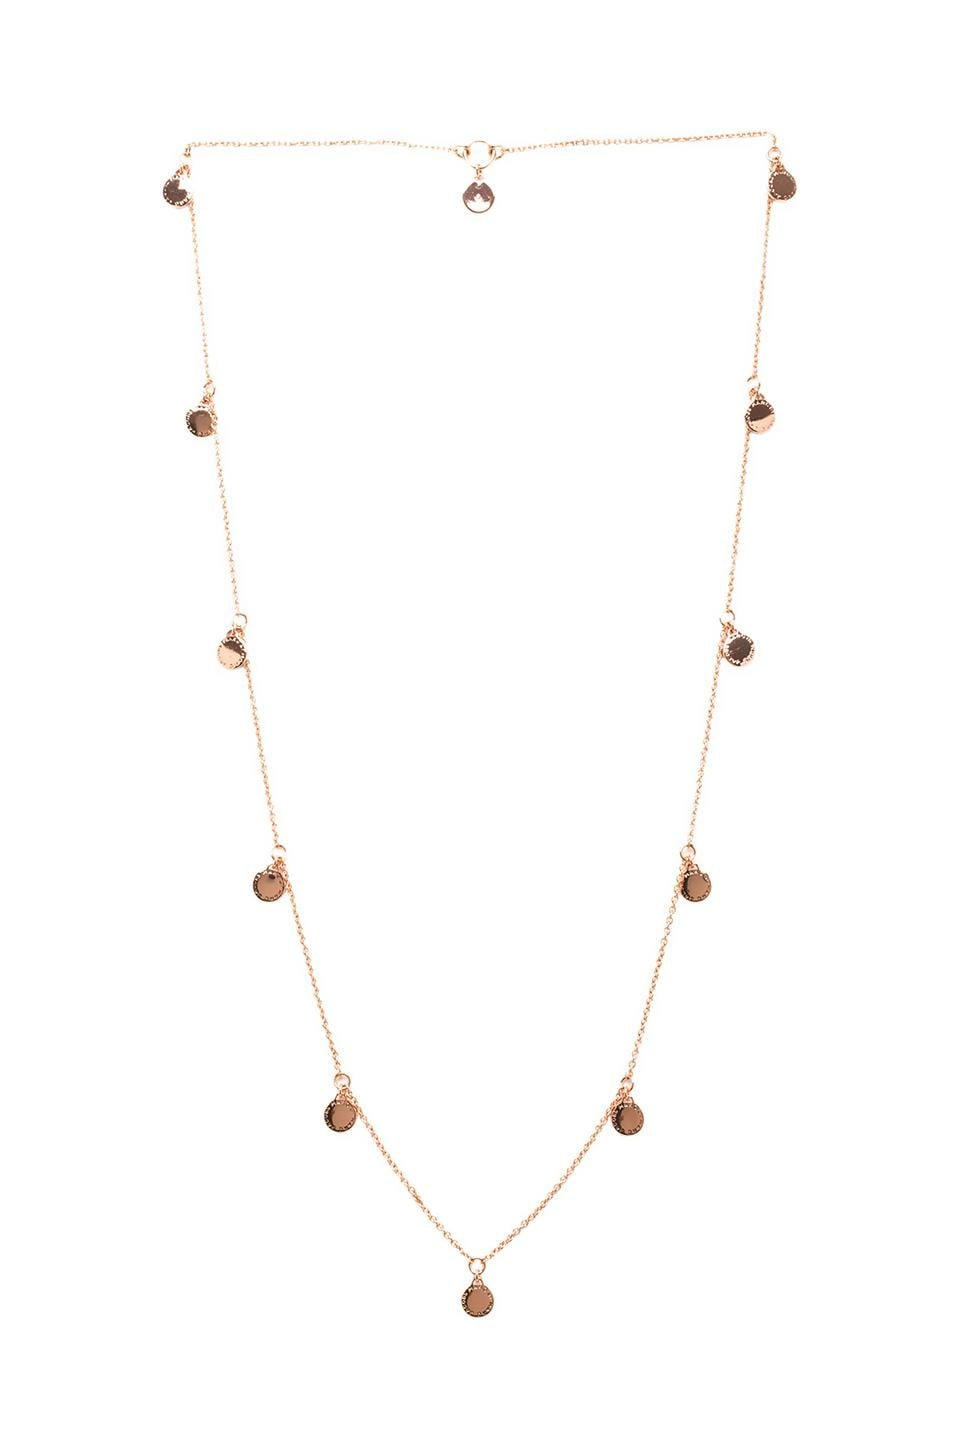 Marc by Marc Jacobs Long Charm Necklace in Rose Gold